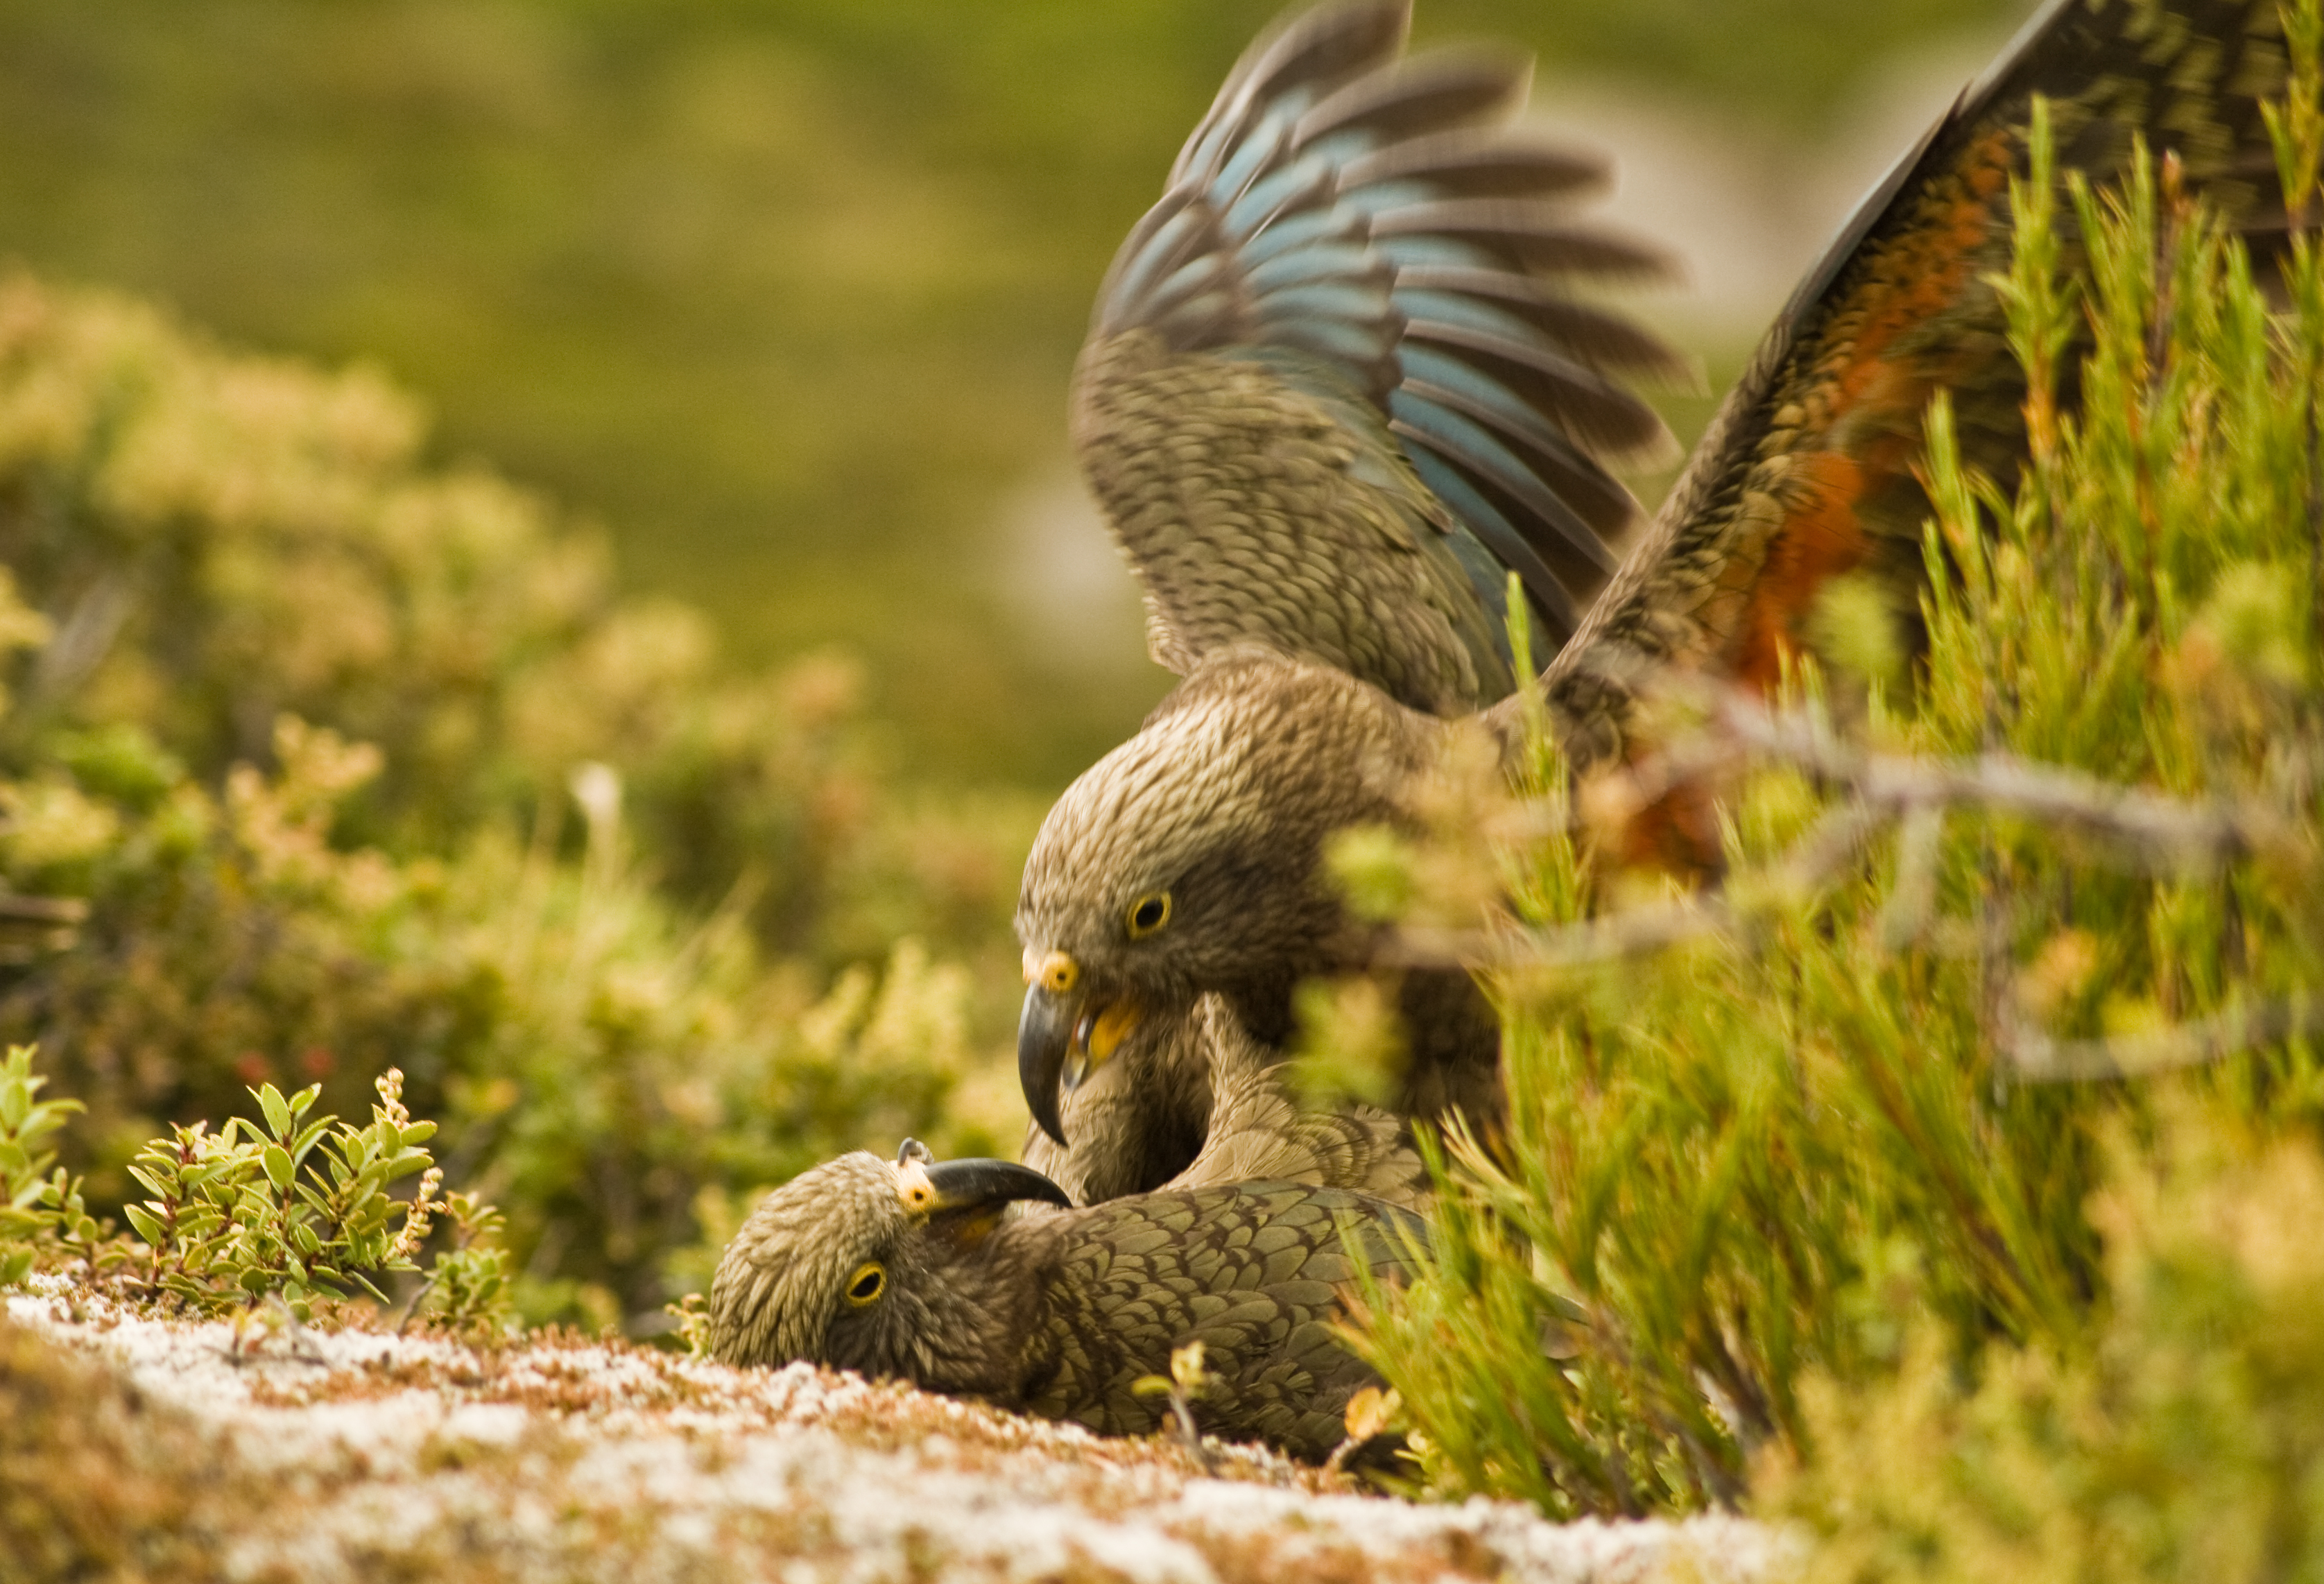 Featured image: What a hoot! Cheeky kea 'laughter' sets off playful antics